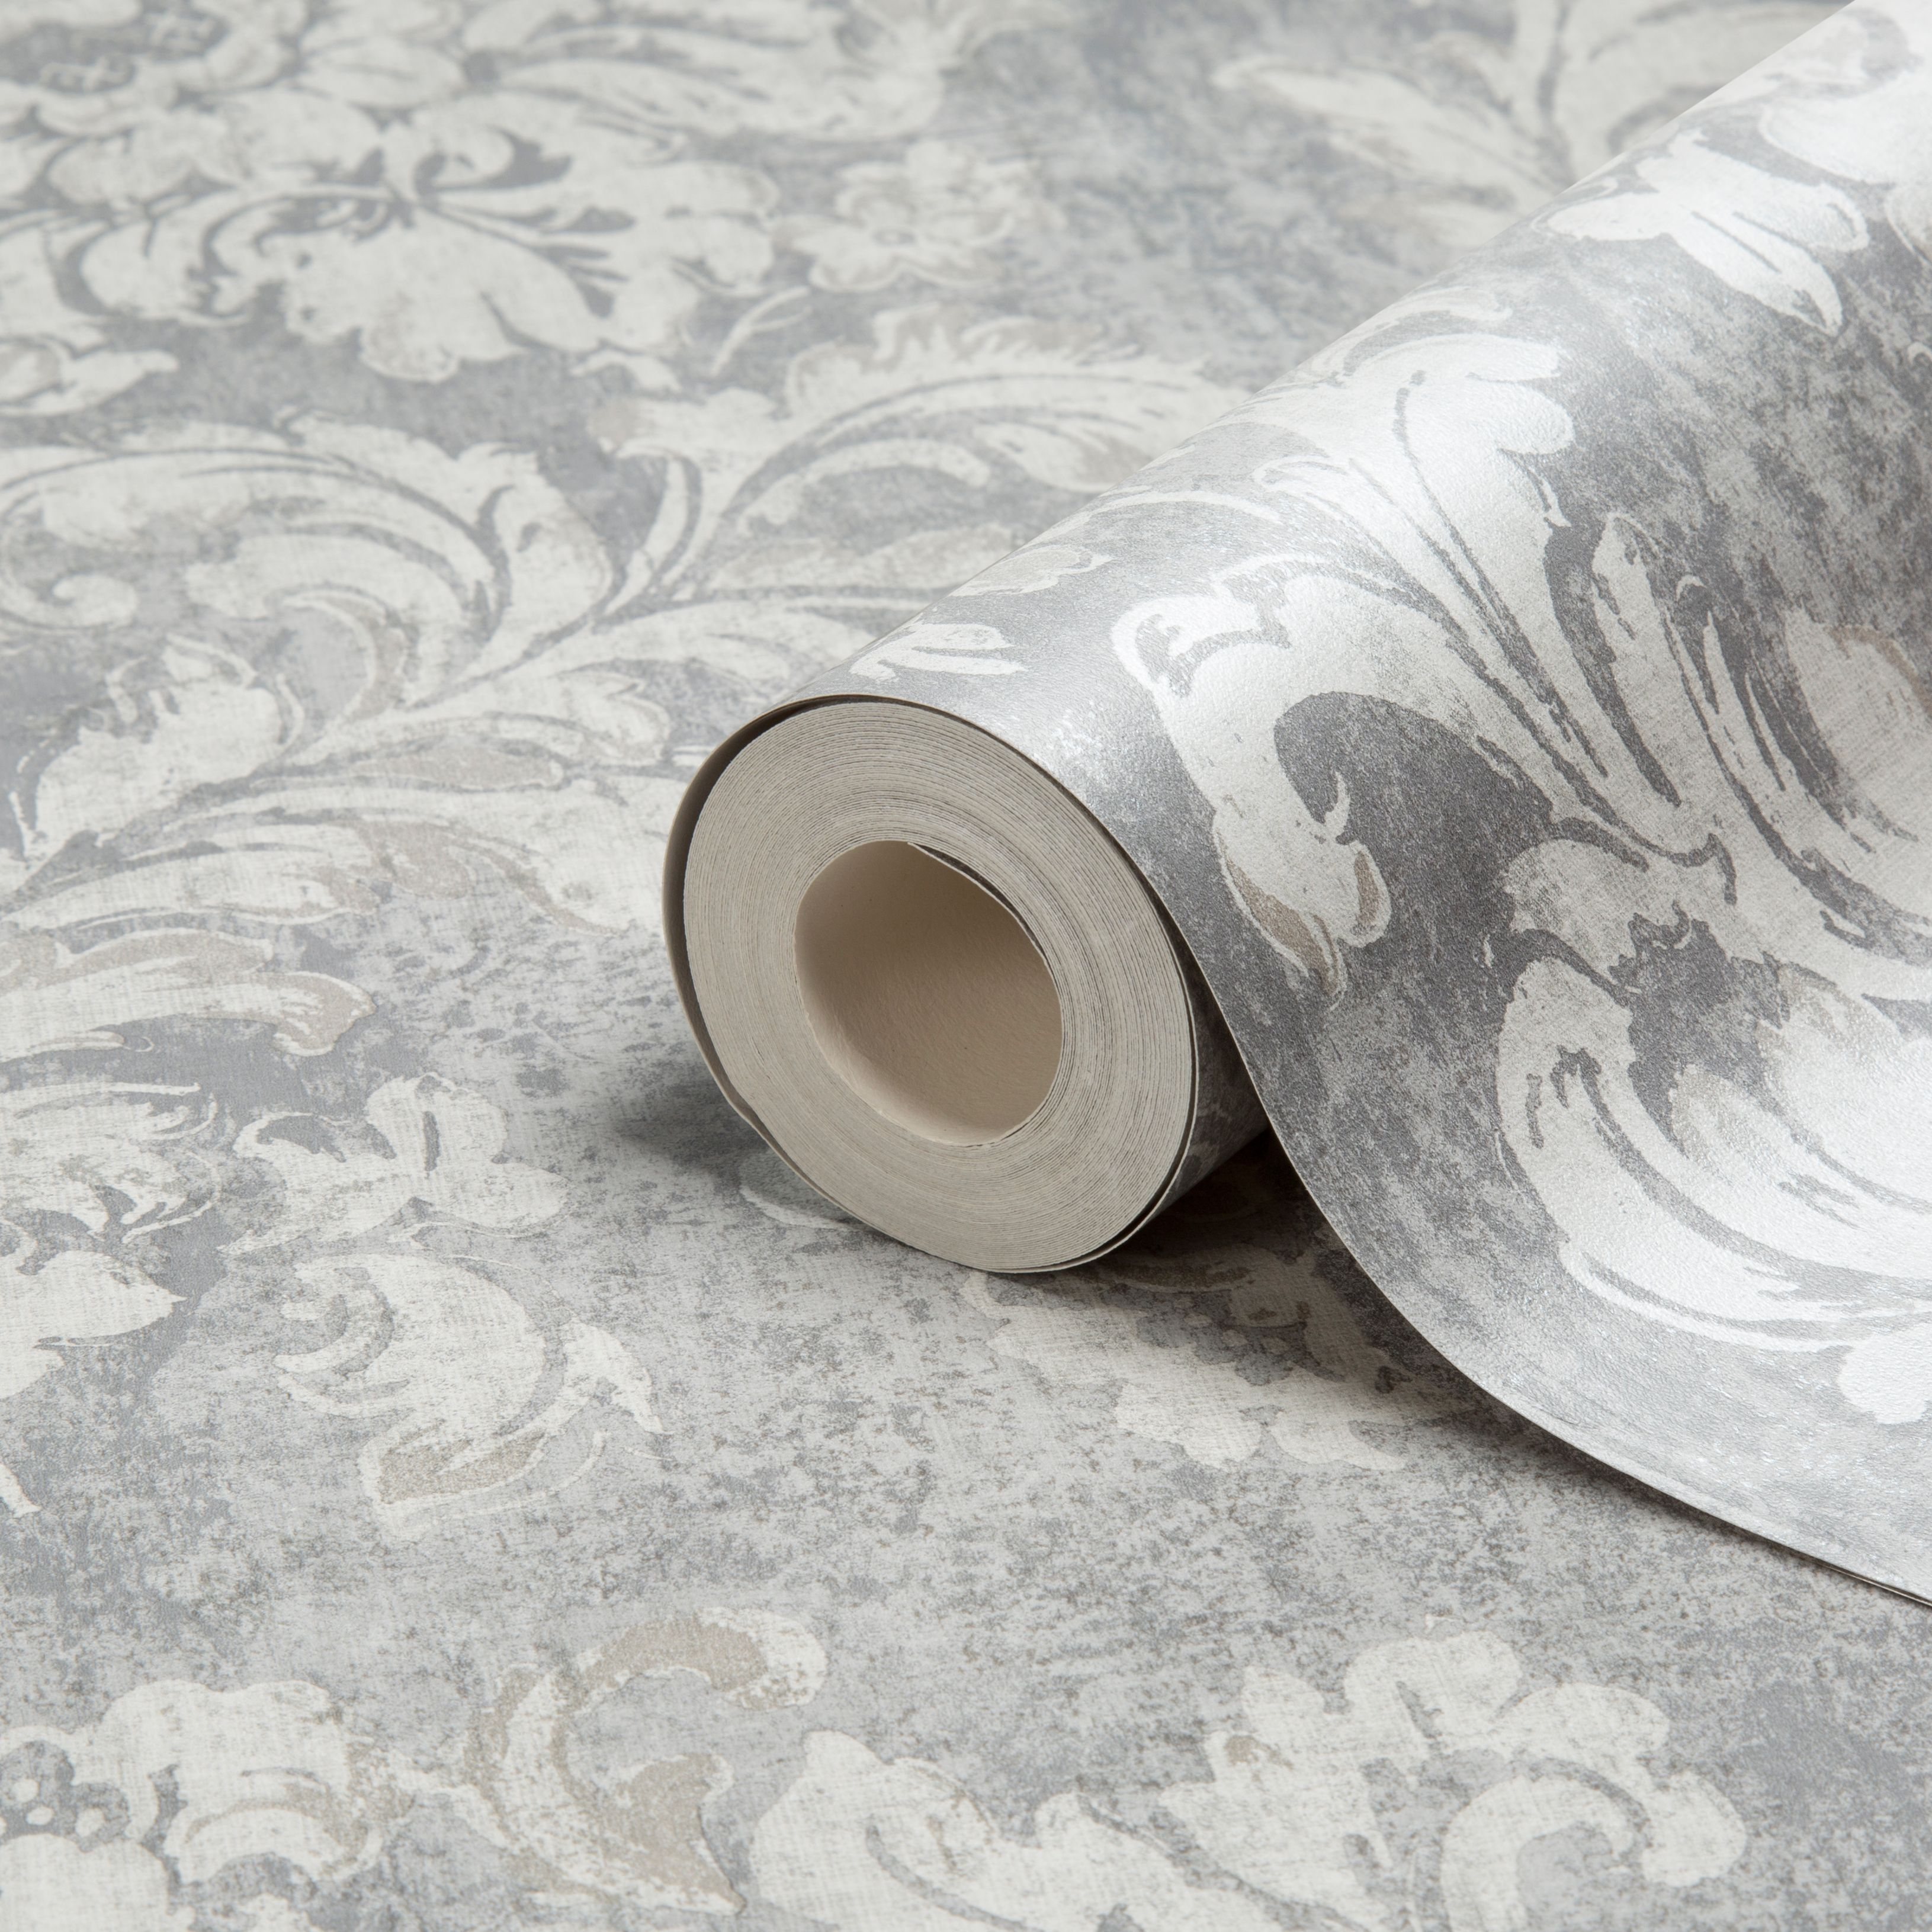 Home diy wallpaper illustration arthouse imagine fern plum motif vinyl - Gold Decadent Trail Light Grey Damask Metallic Wallpaper B Q For All Your Home And Garden Supplies And Advice On All The Latest Diy Trends